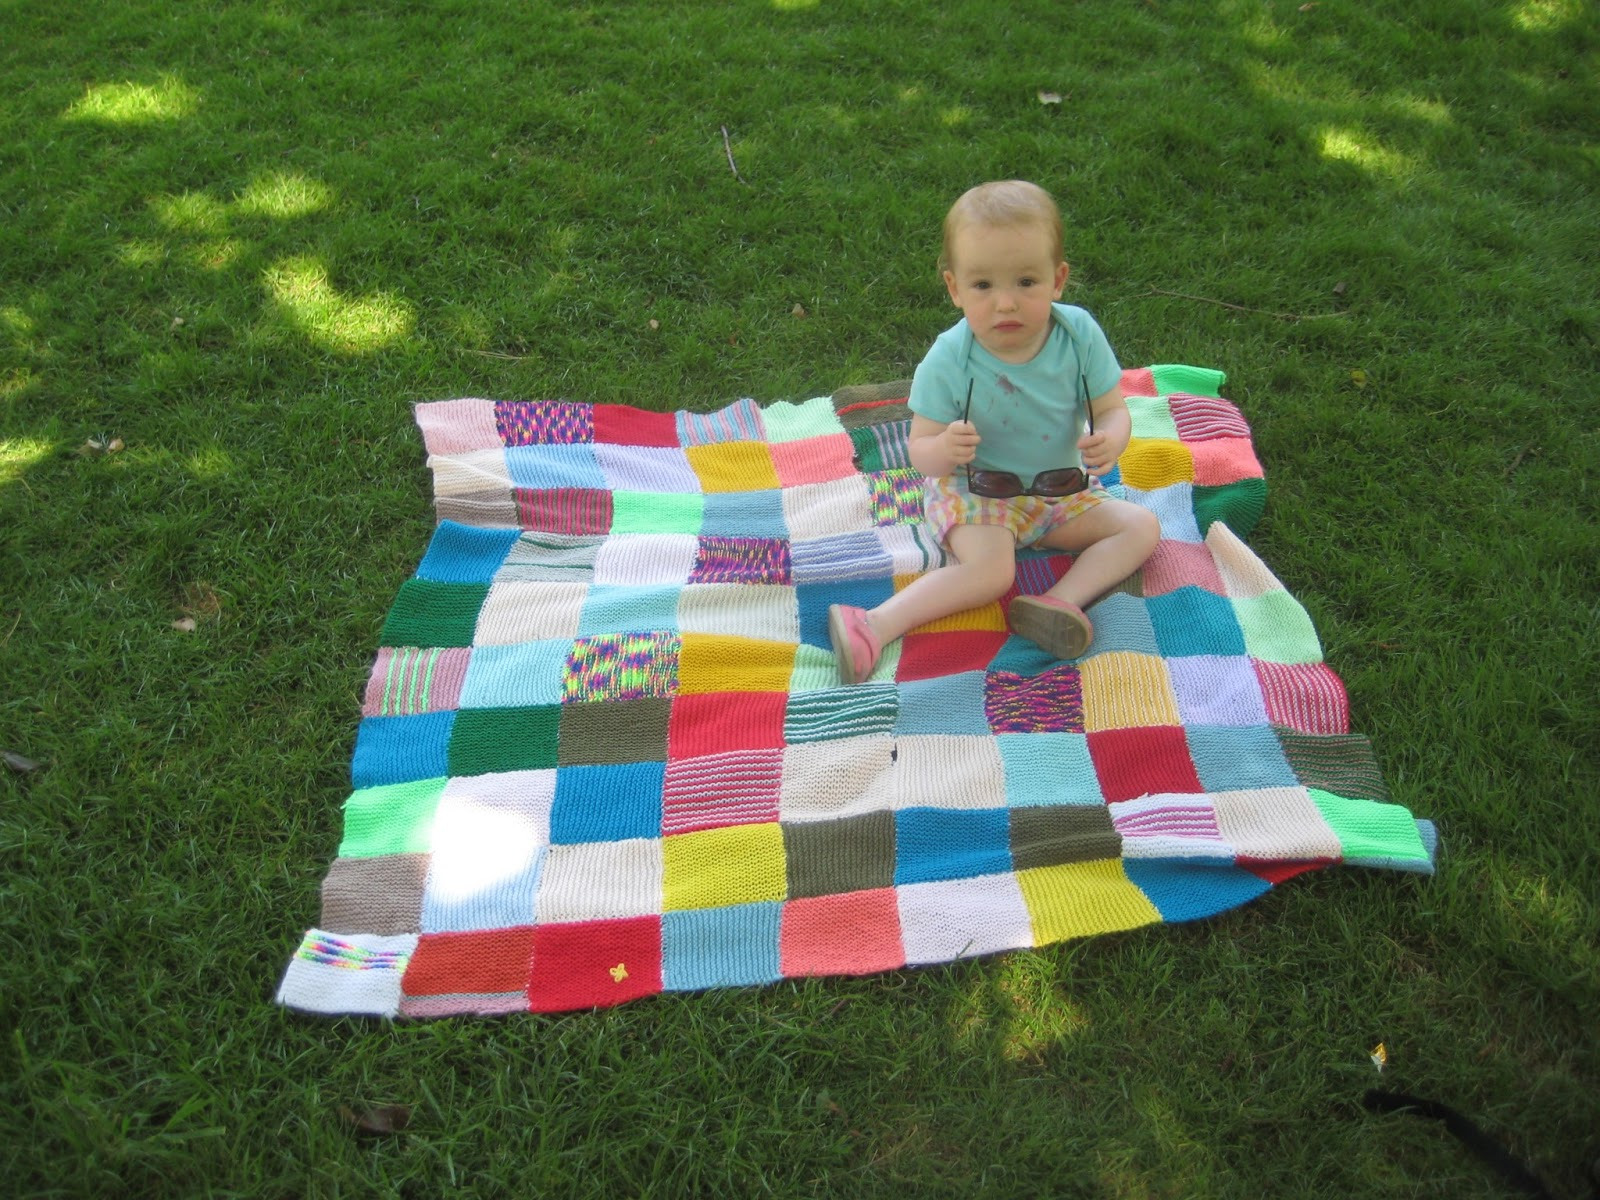 Blanket On The Ground.Dropstitch Blanket On The Ground